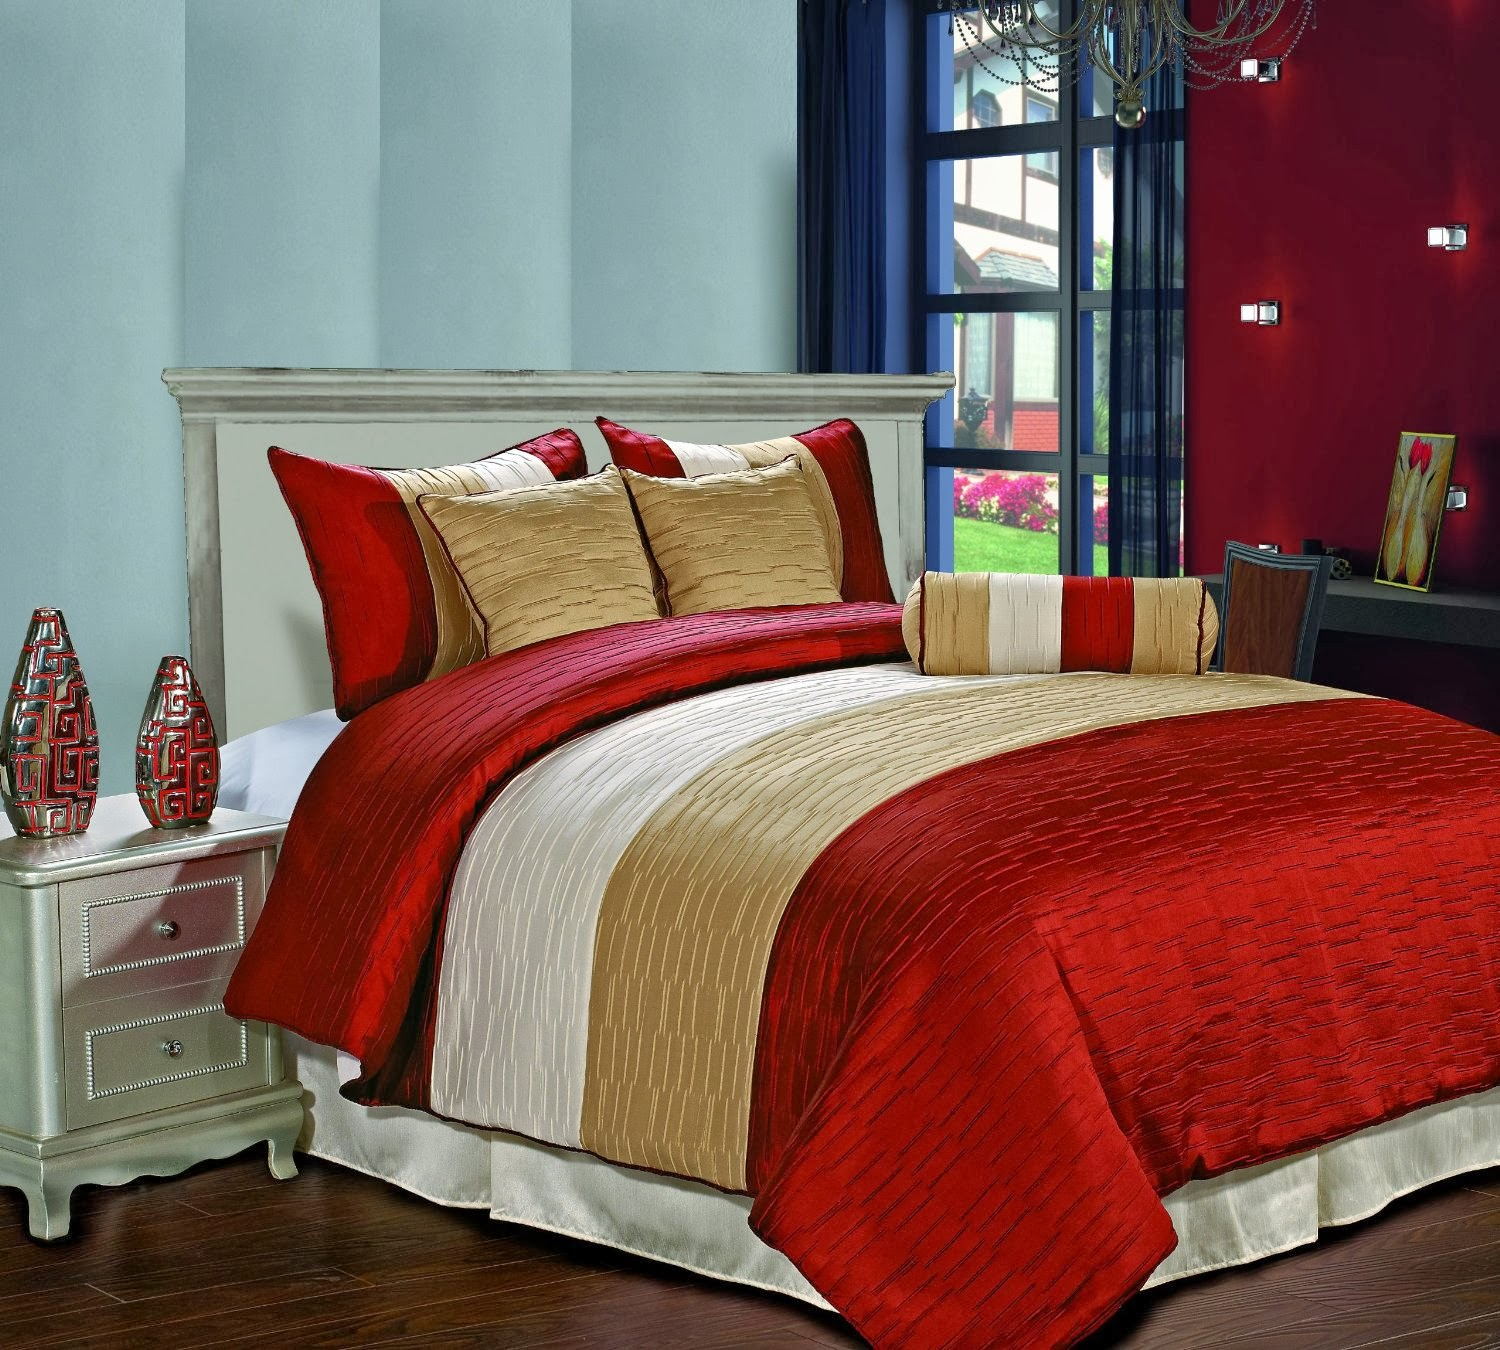 Red and beige cream bedding ease bedding with style Red and cream bedroom ideas